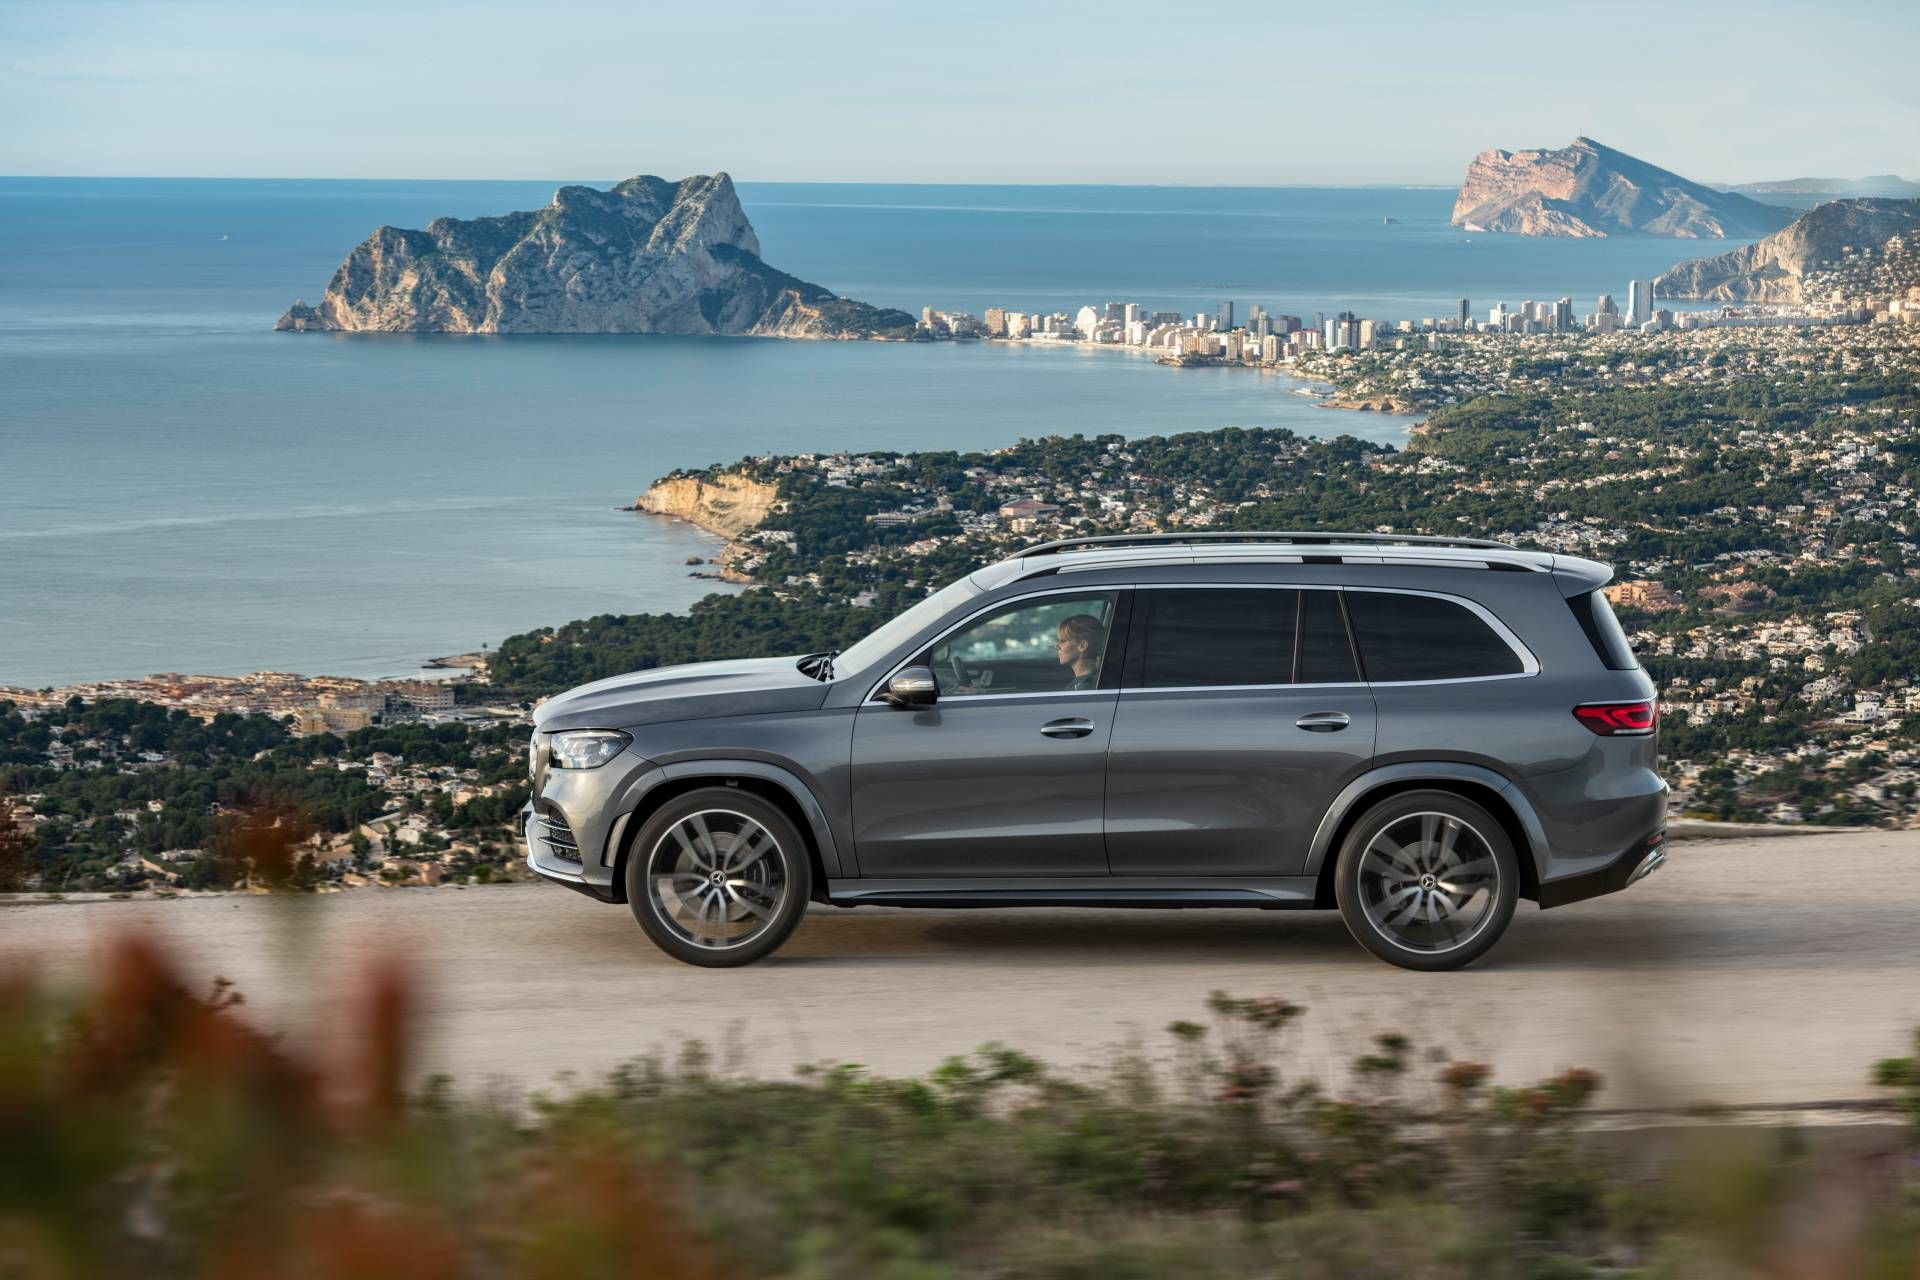 2020 Mercedes Gls Launches In Europe With Two Diesel Options Starts At 85 923 Carscoops Mercedes Benz Mercedes New Mercedes